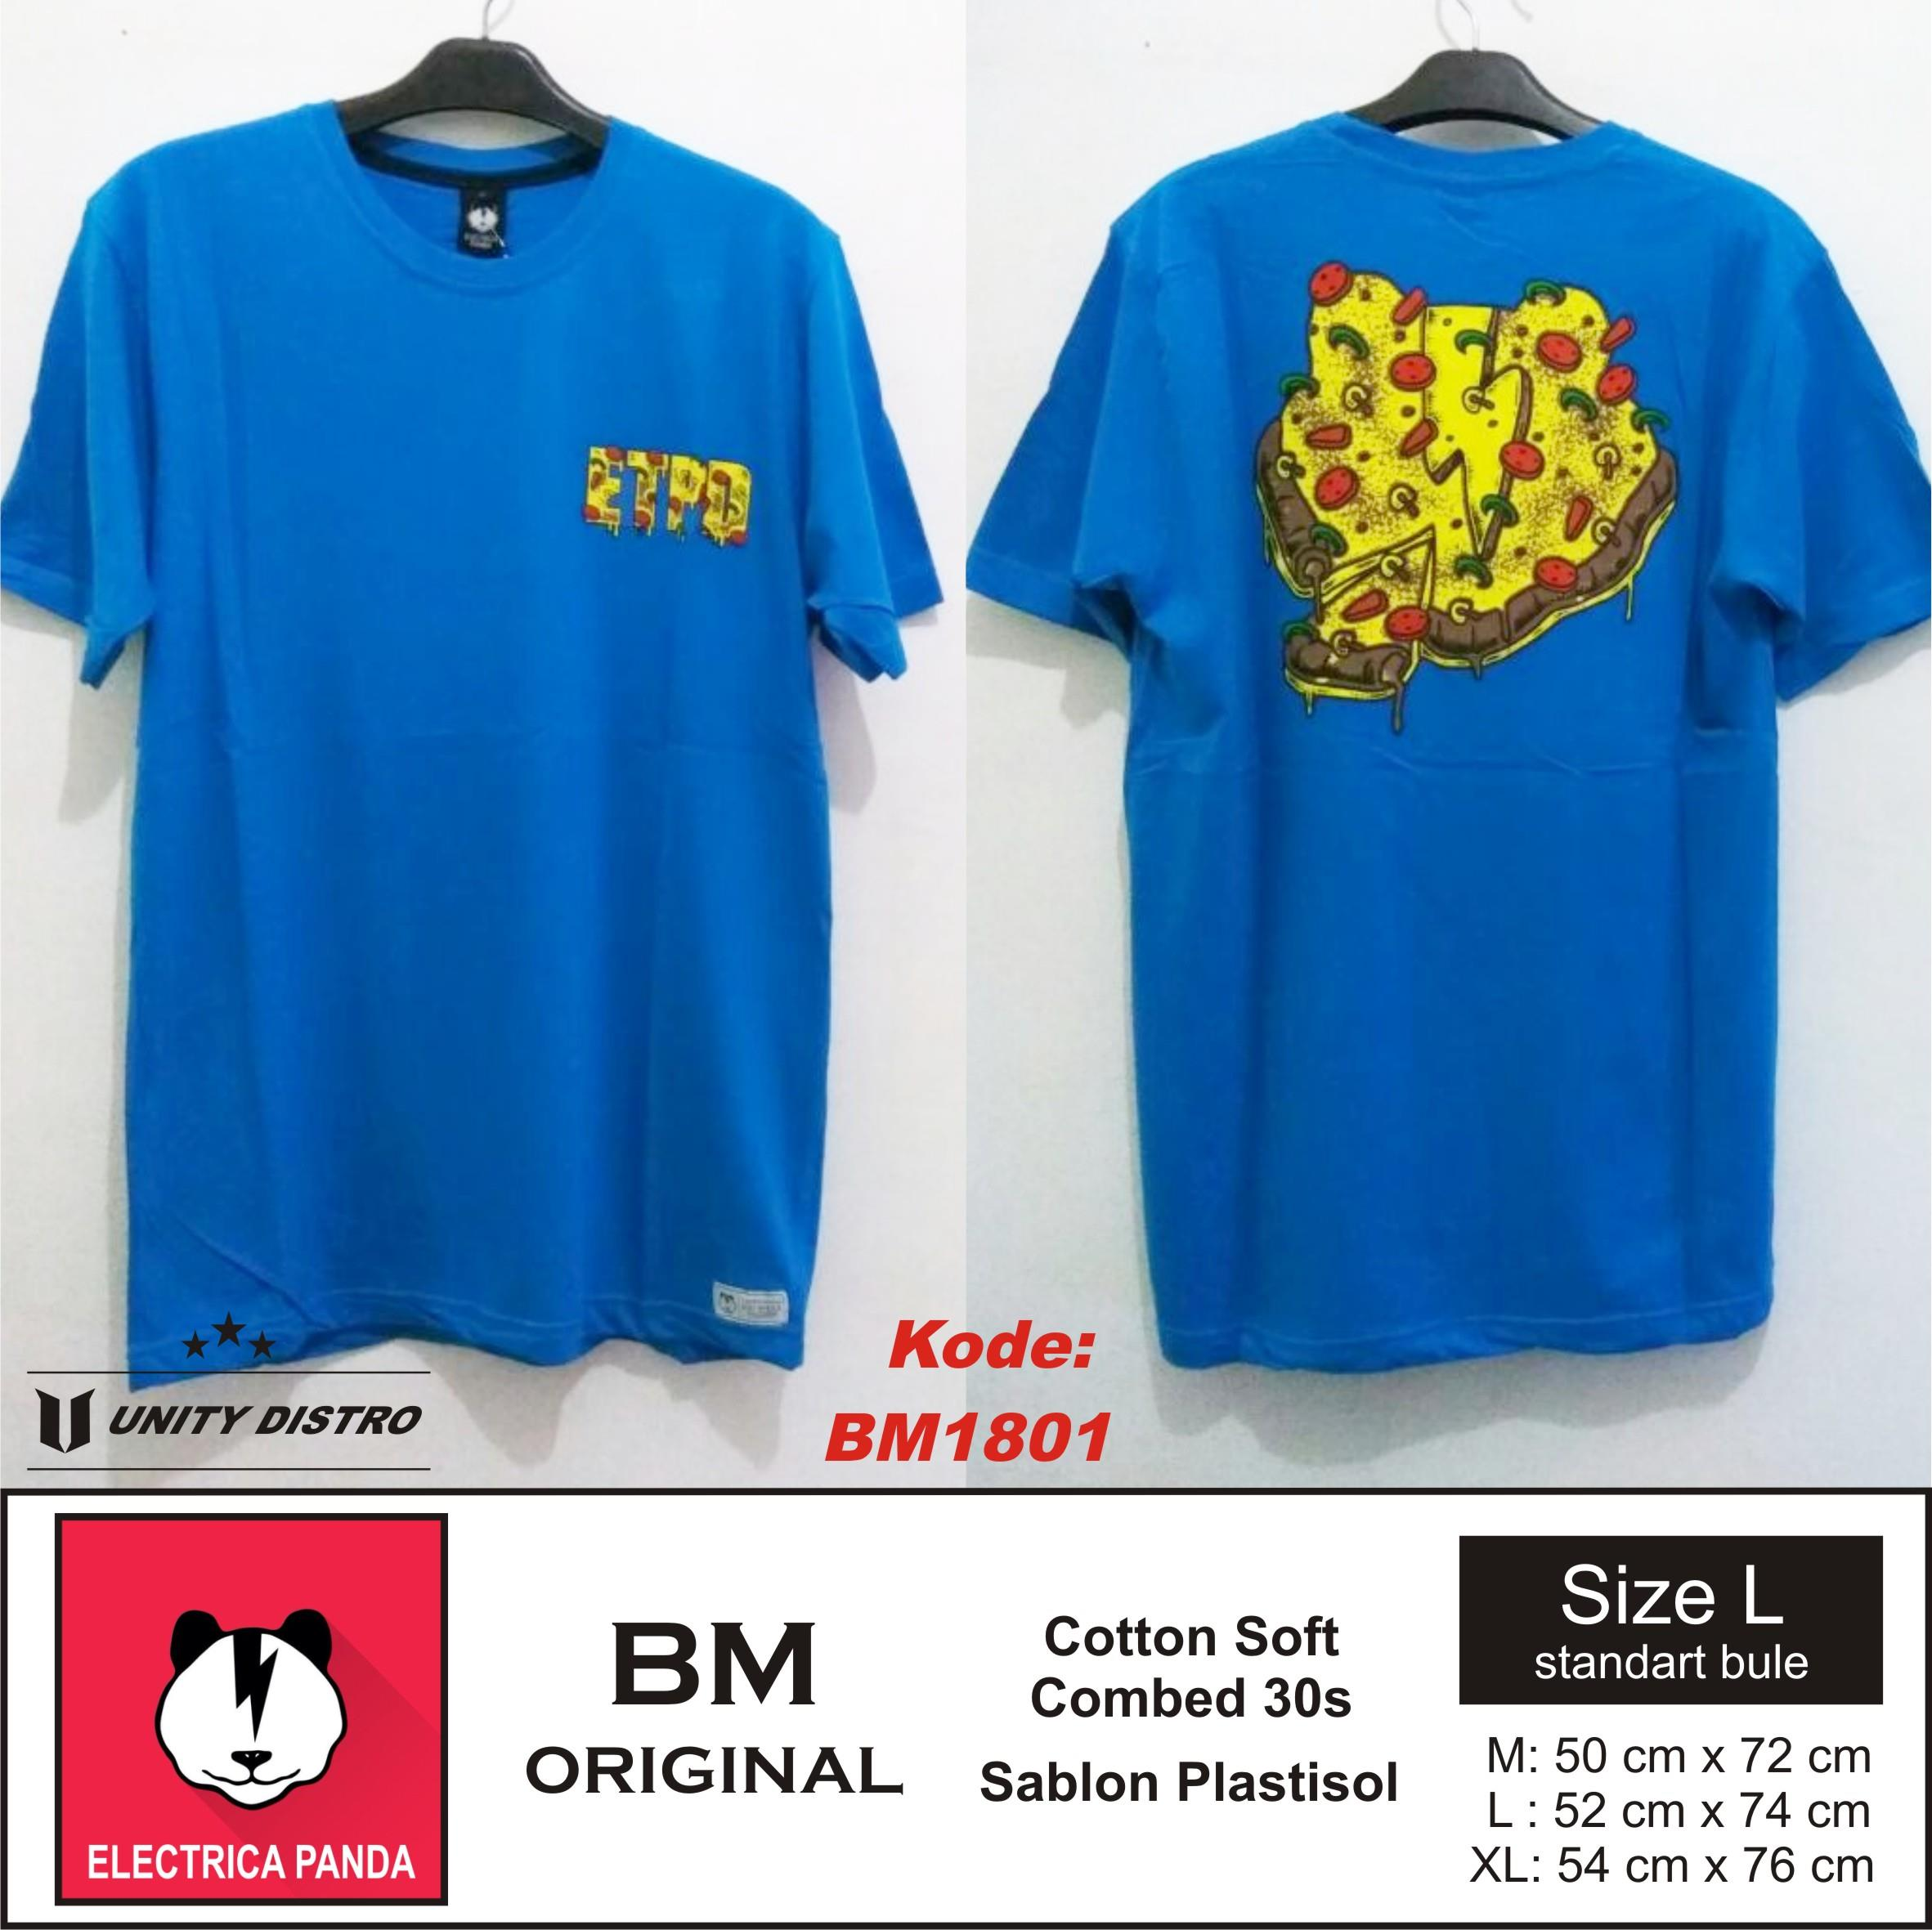 Sell Wholesale T Shirts Distro Bm Ori Or The Premium Electrica Grosis Kaos Cotton Combed Plastisol Bandung Panda From Indonesia By Unity Distrocheap Price